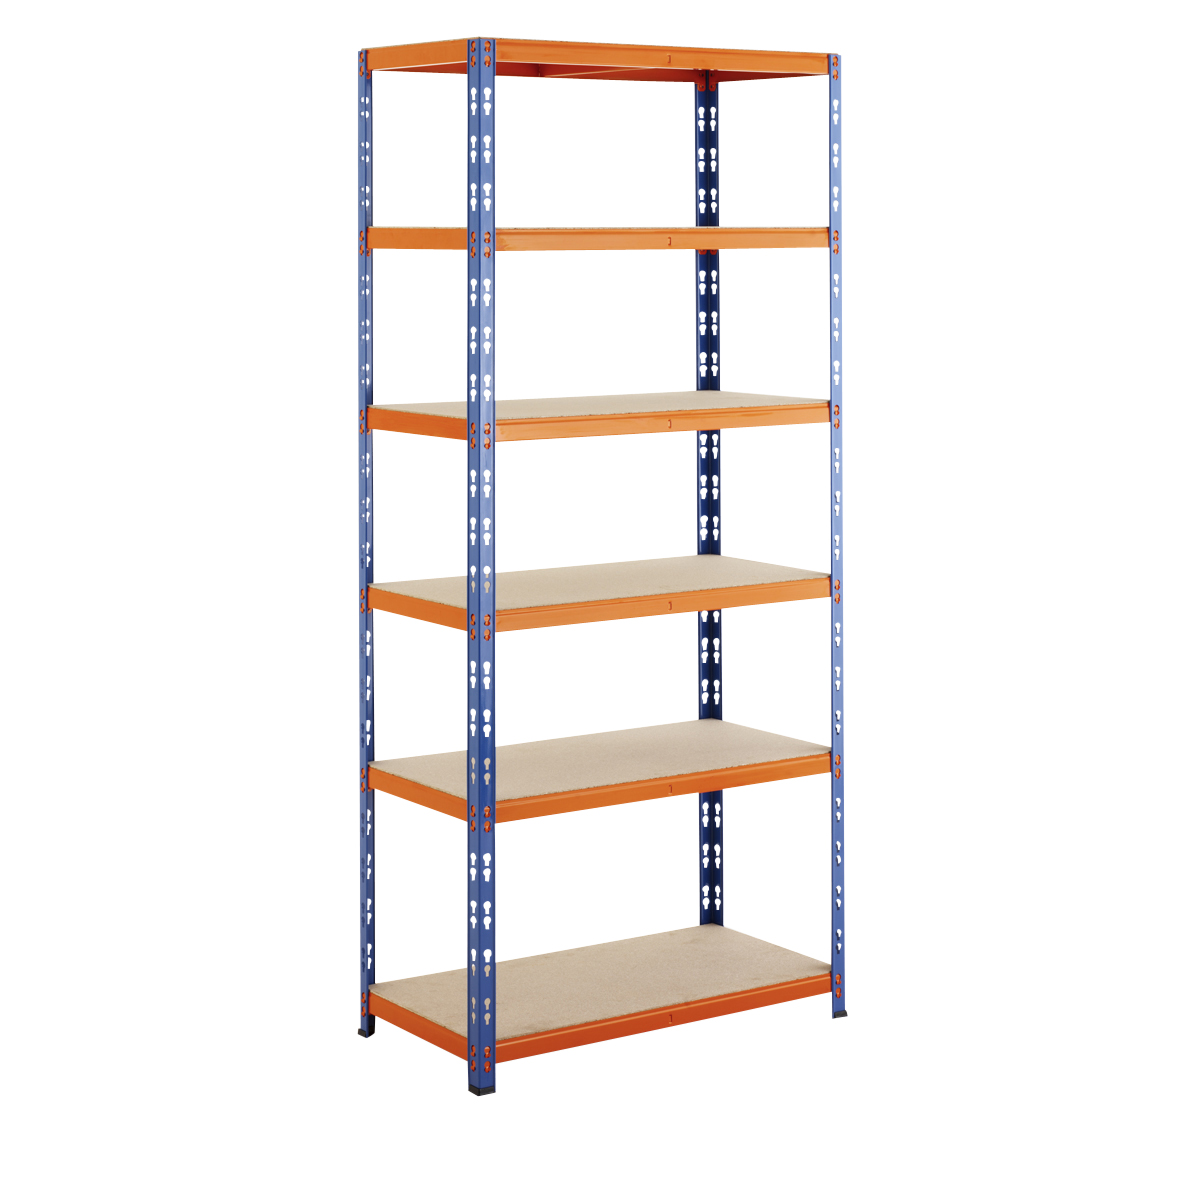 MAX2 Industrial Shelving Racking Storage System - 2000mm high BiGDUG